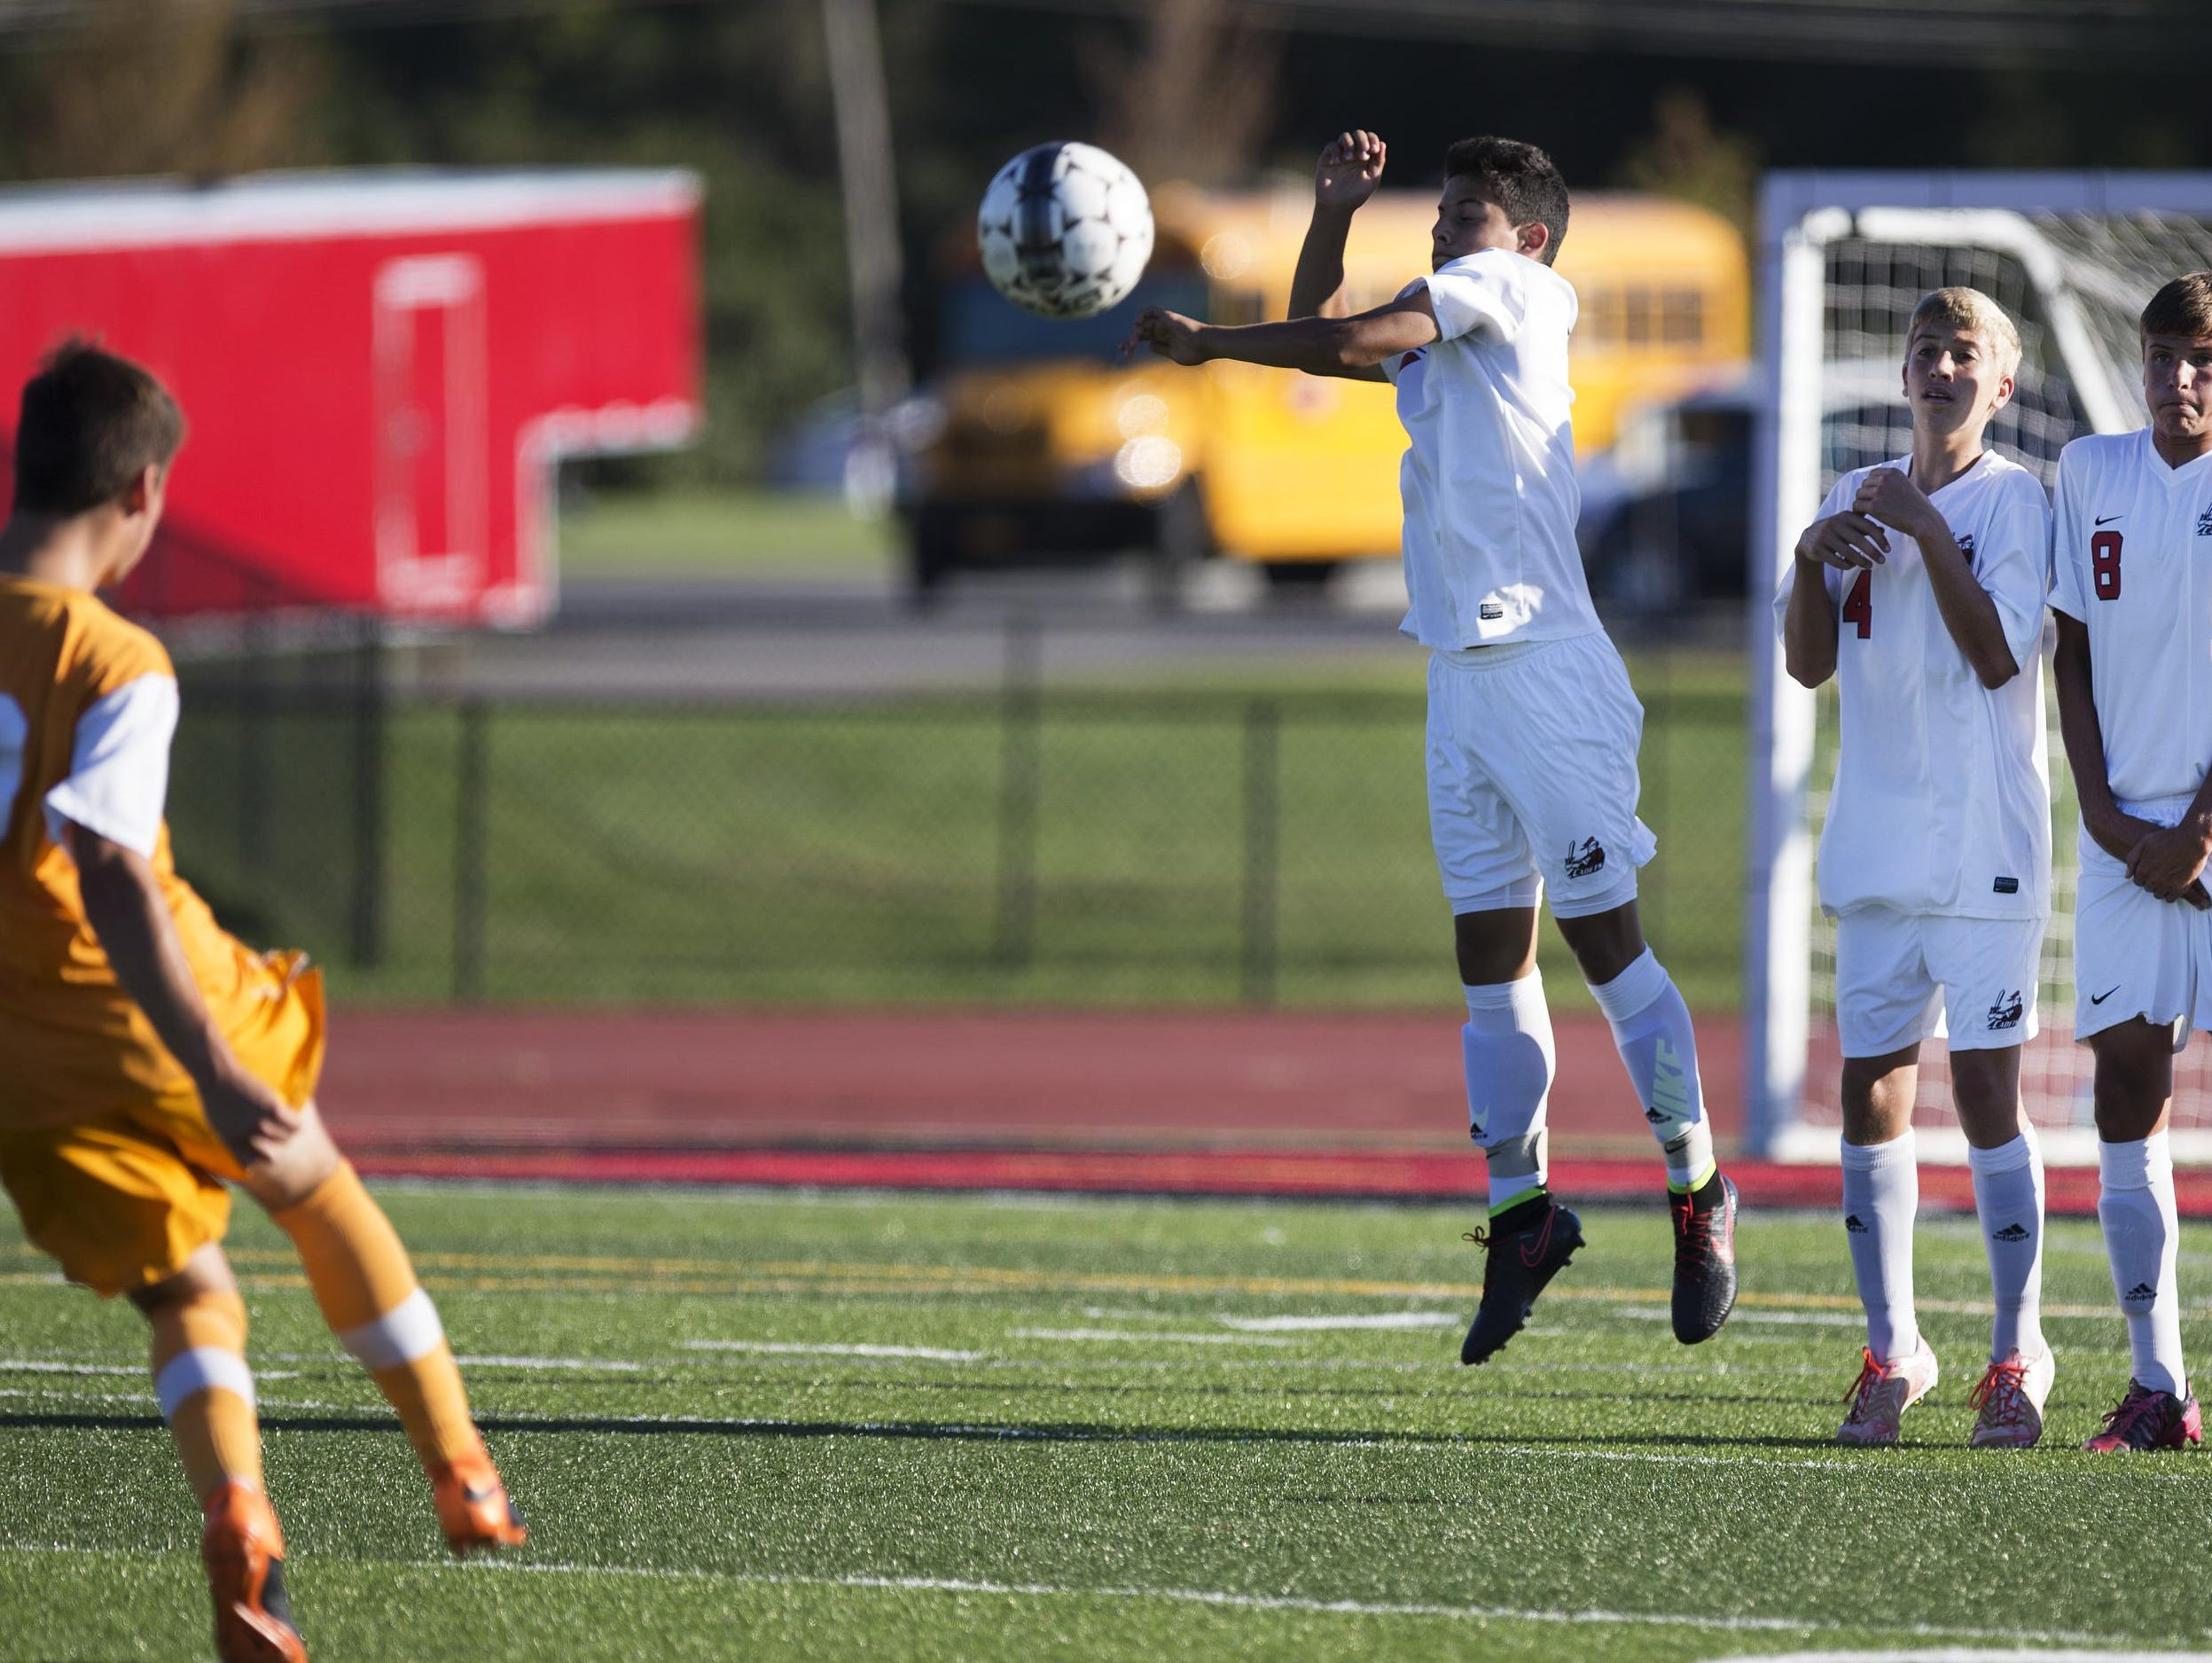 Hilton's Noah Malta, Brian Wilkin, and Brady Farrell stand in front of the goal as Churchville-Chili's Lukas Fernandes attempts a penalty kick during a game at Hilton High School on Wednesday, September 23, 2015.